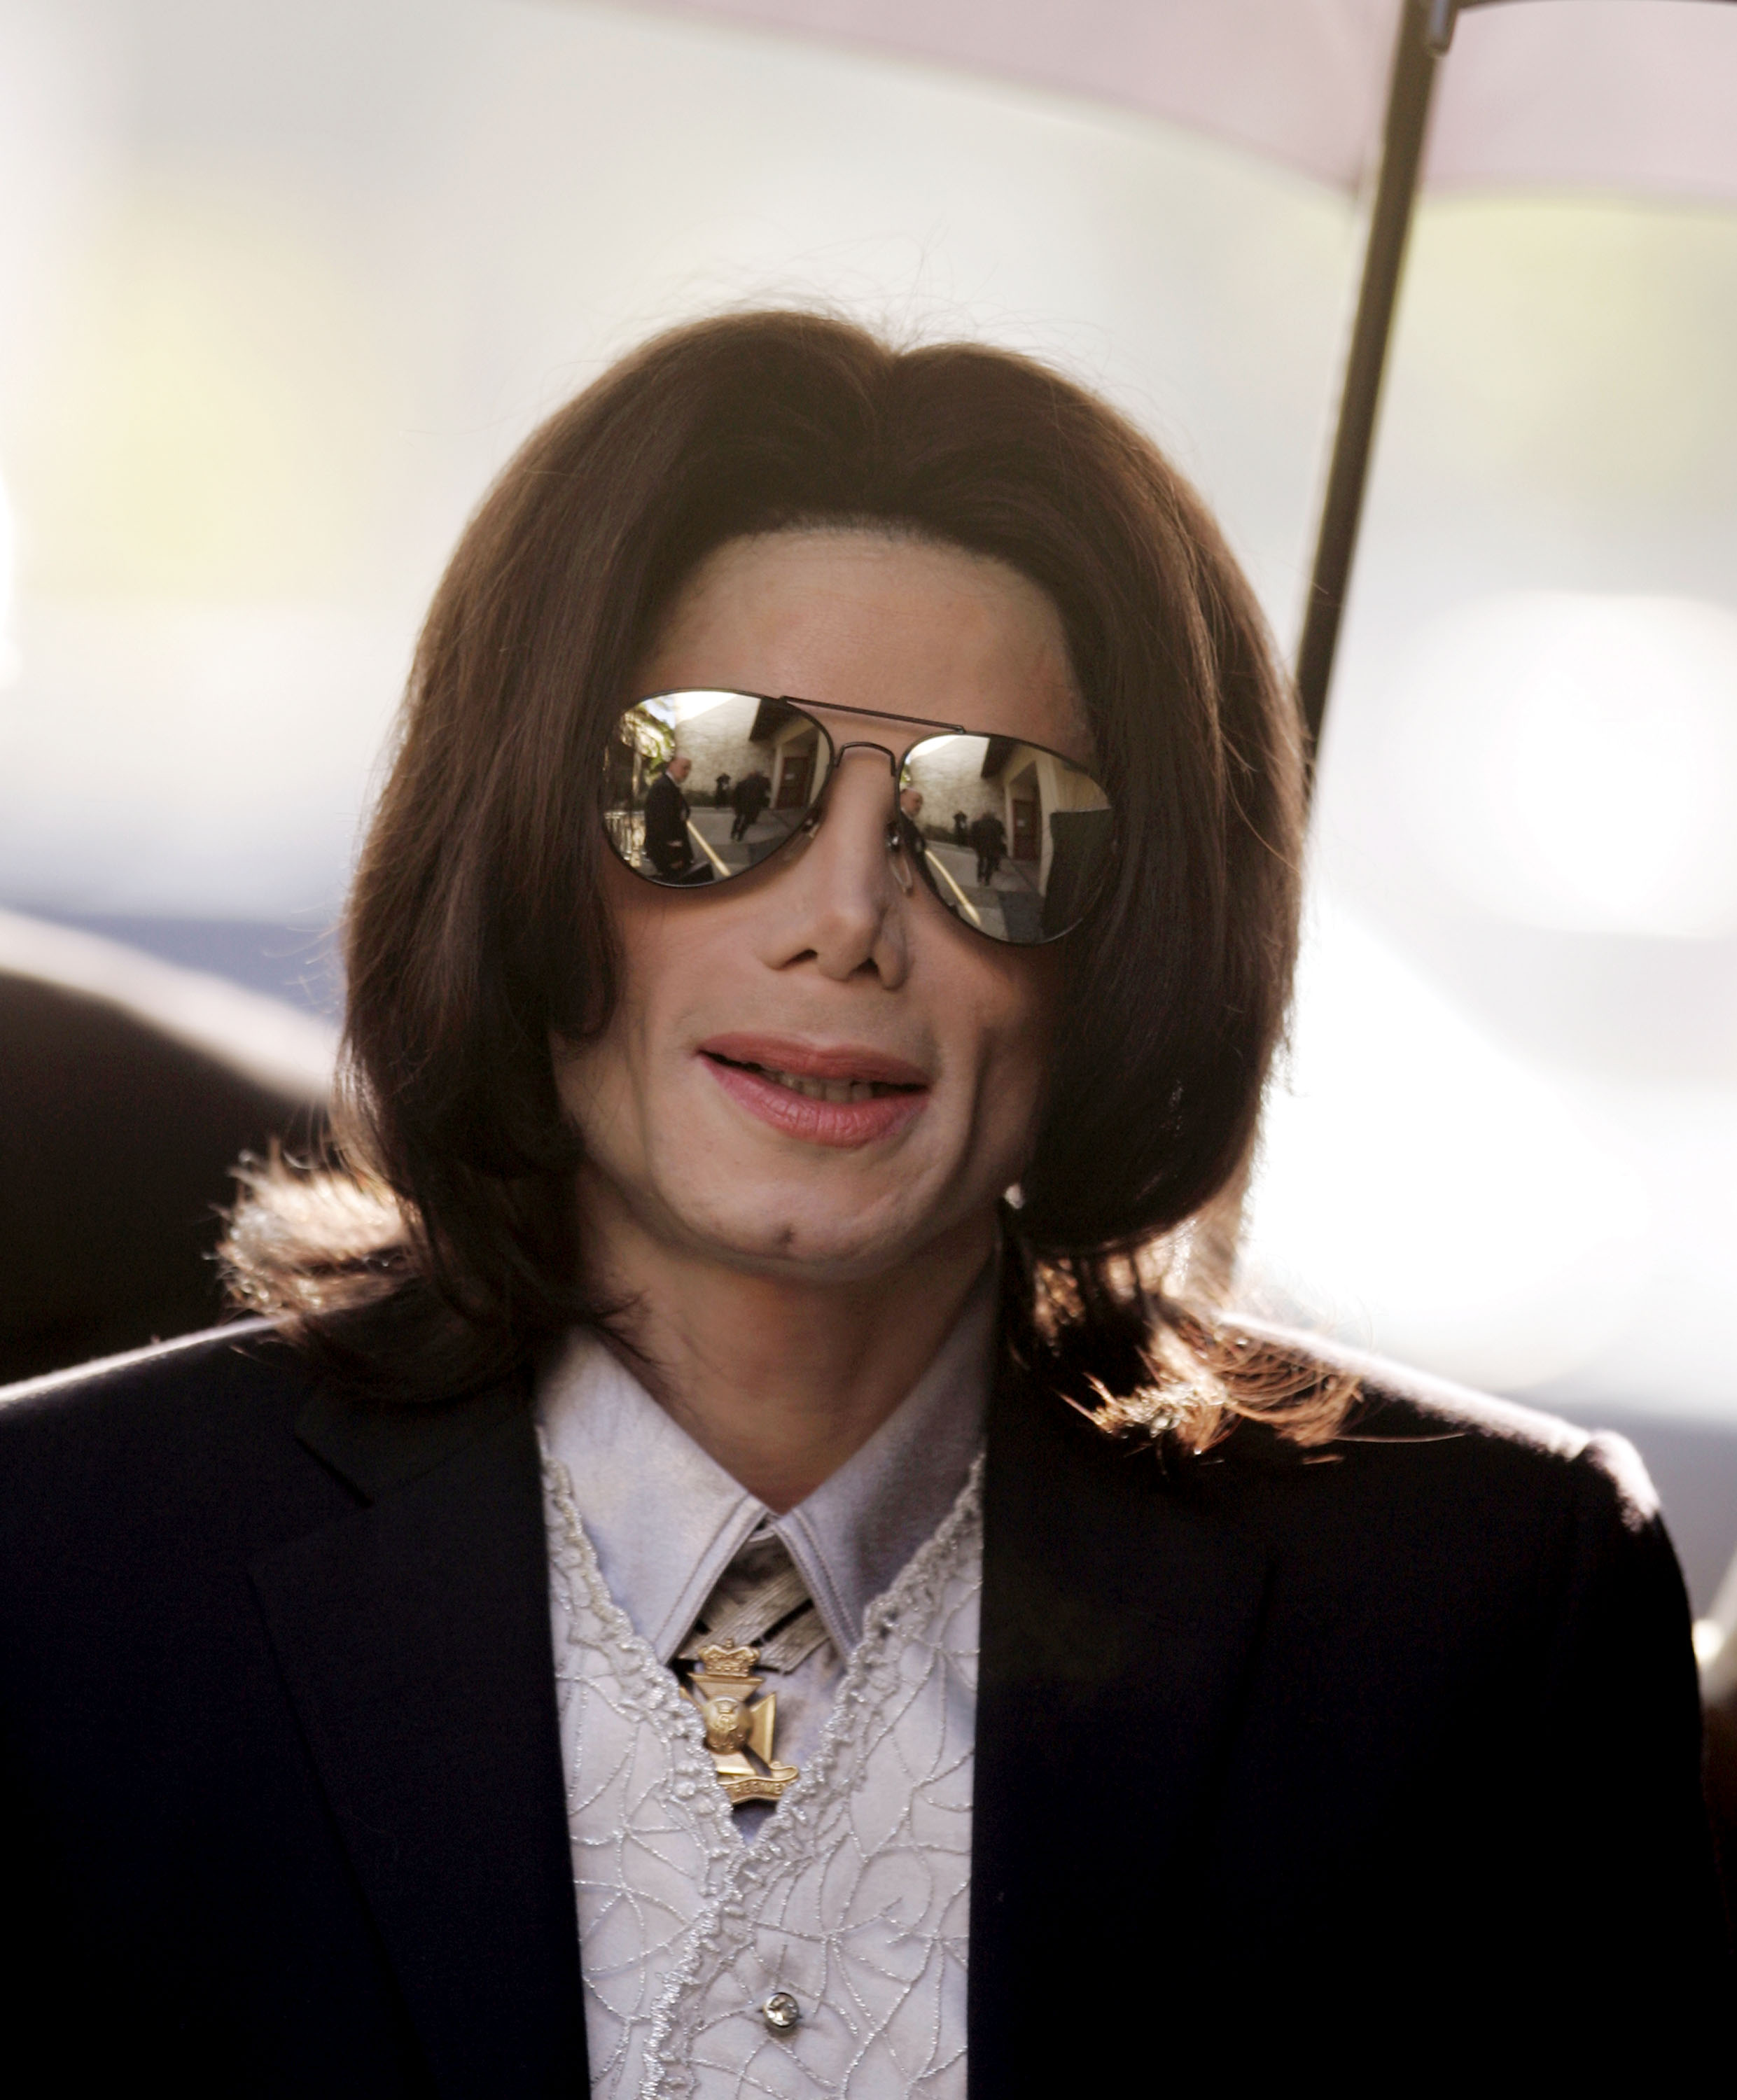 The documentary, 'Leaving Neverland' which aired for the first time in the UK on Tuesday, was aired hours after protesters gathered outside the central London offices of Channel 4, holding banners claiming he was innocent. (Source: Getty Images)